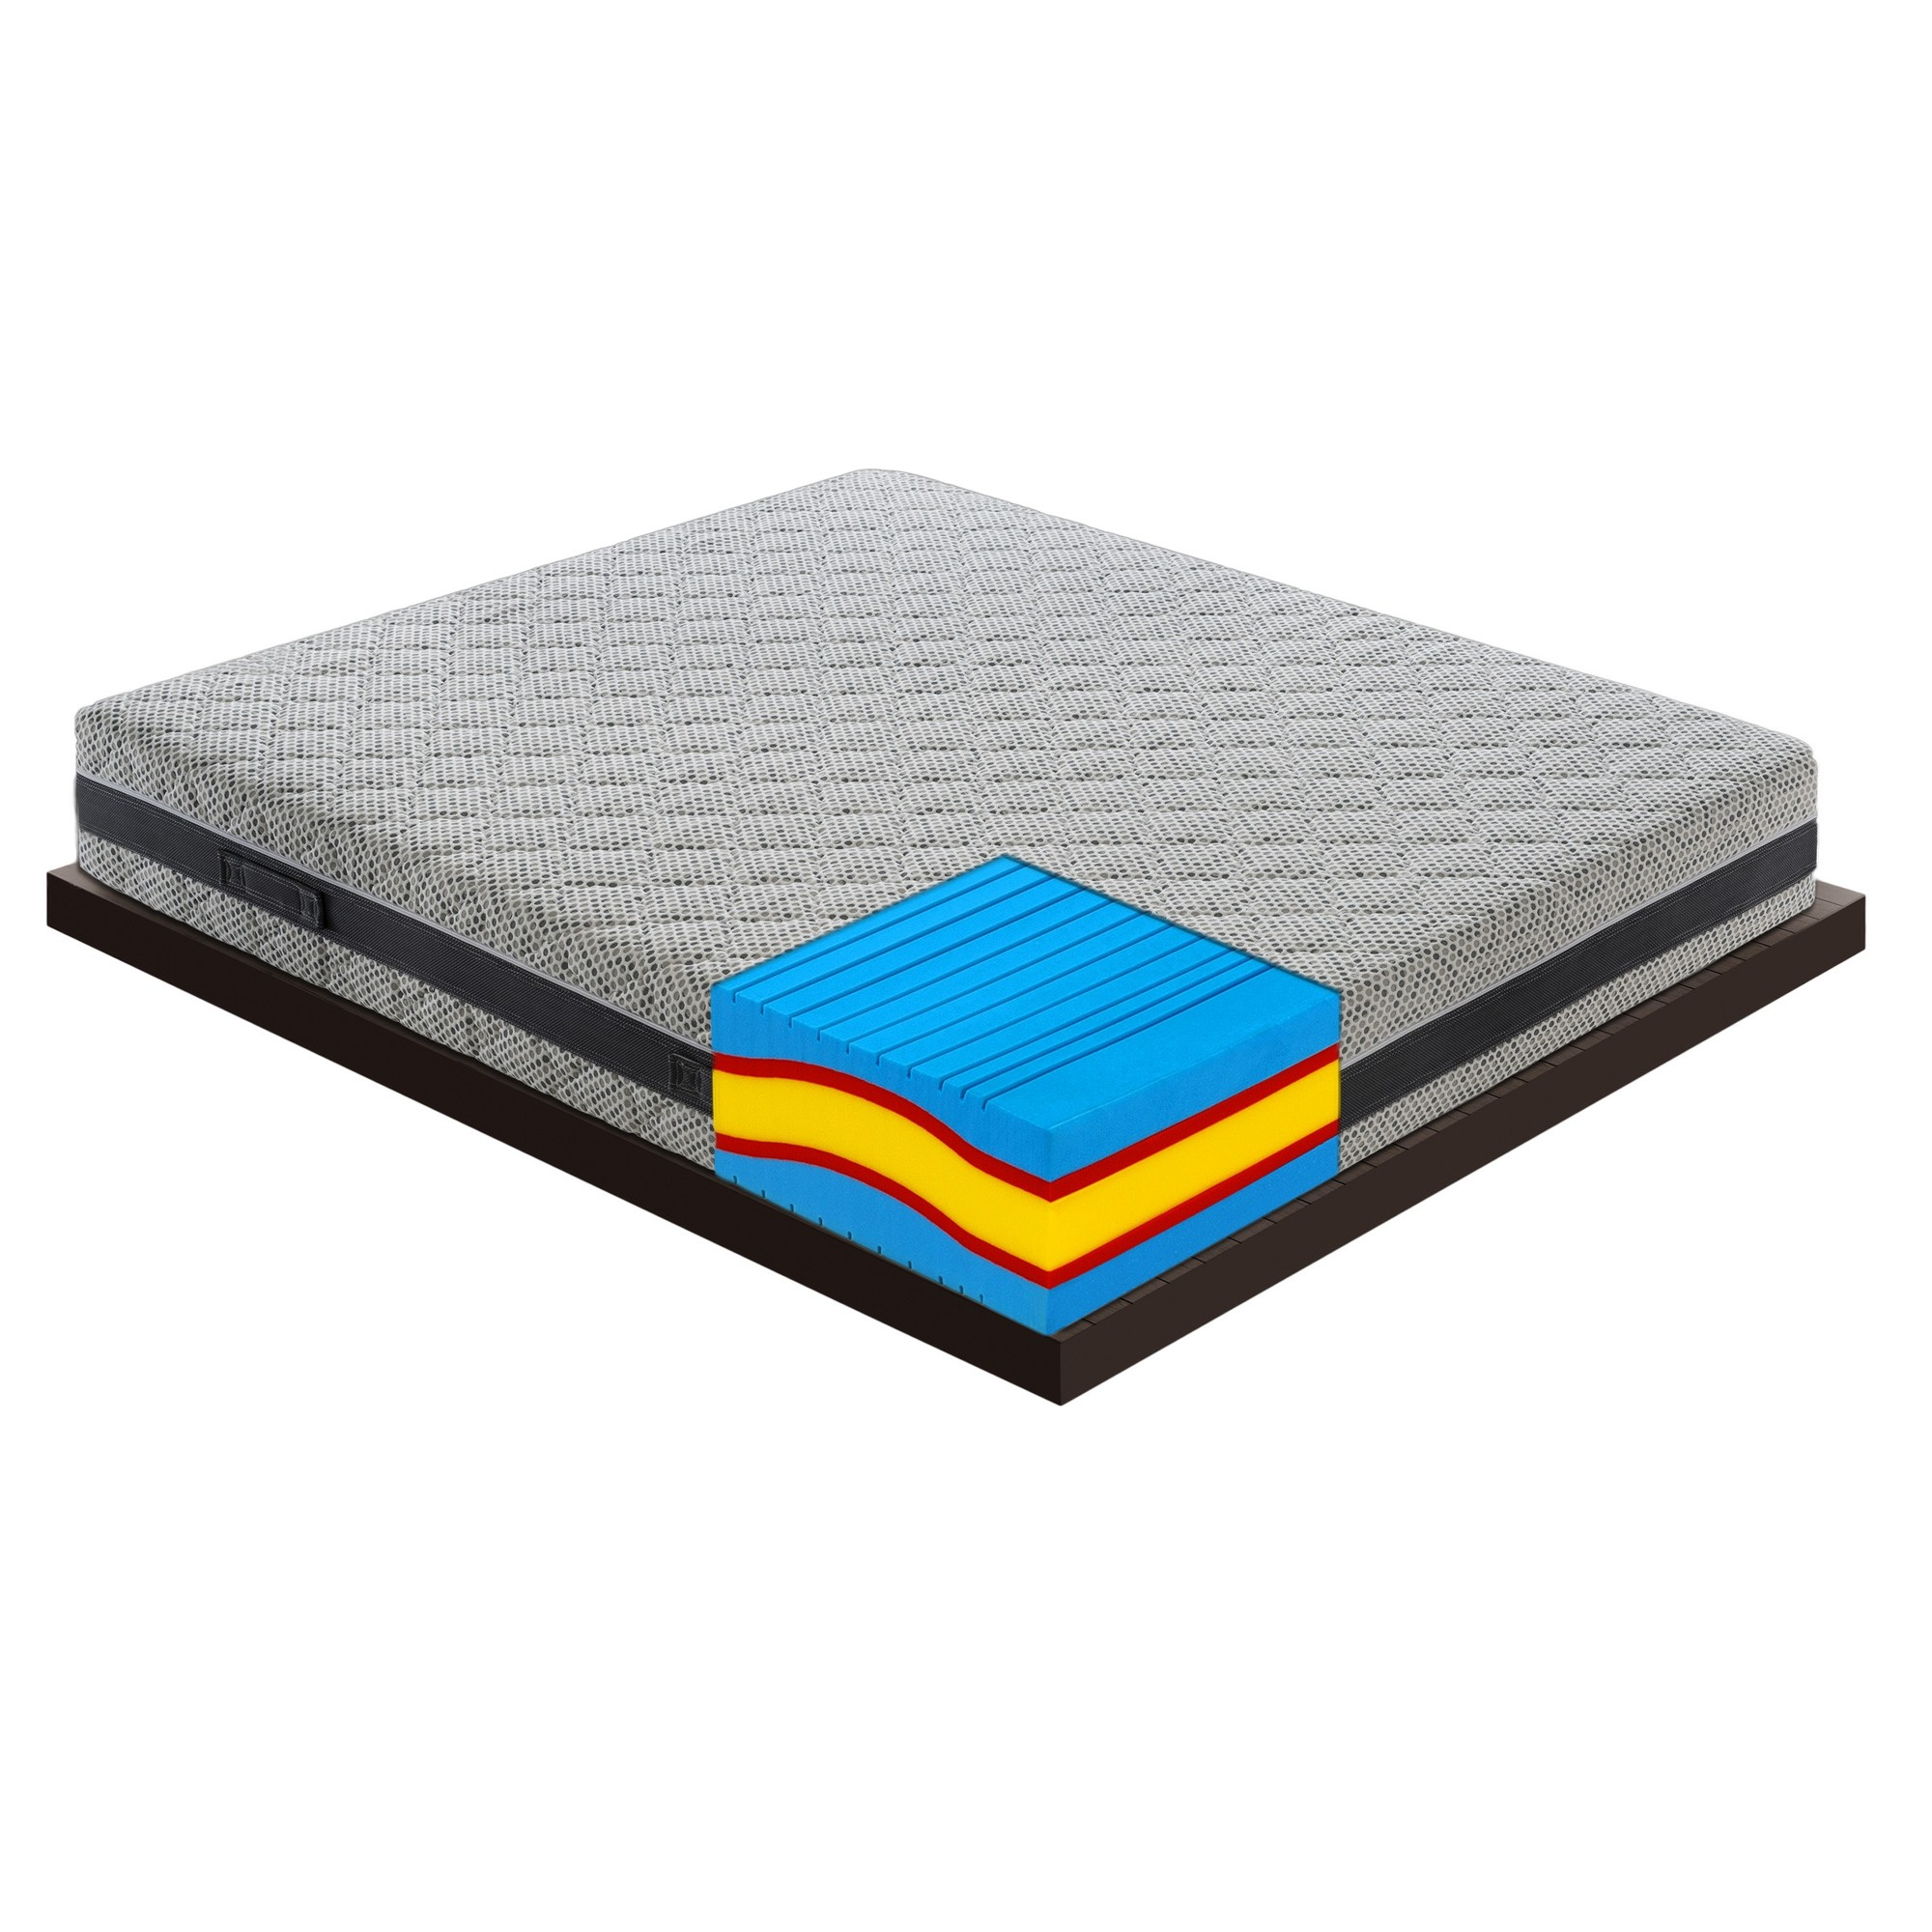 Foam Materassi.Materasso In Memory Foam Mymemory 5 Strati 7 Zone Differenziate